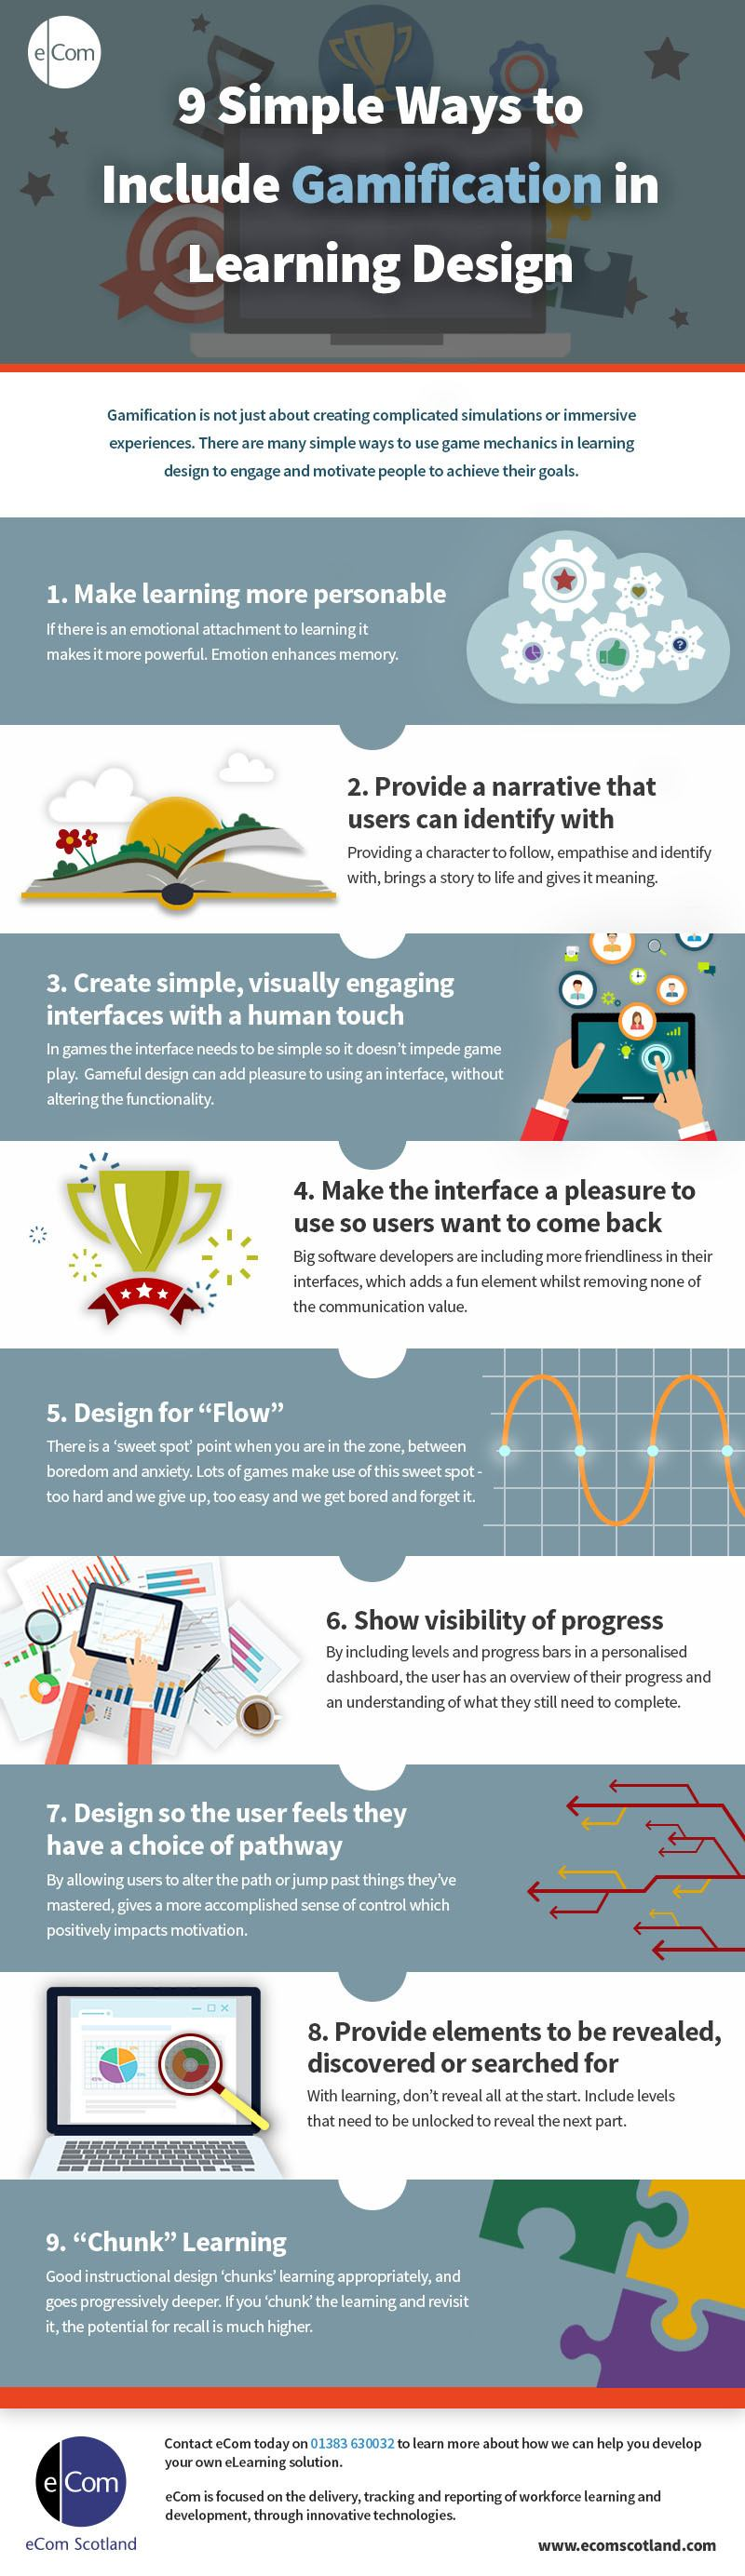 9 Ways to Include Gamification in Learning Design Infographic